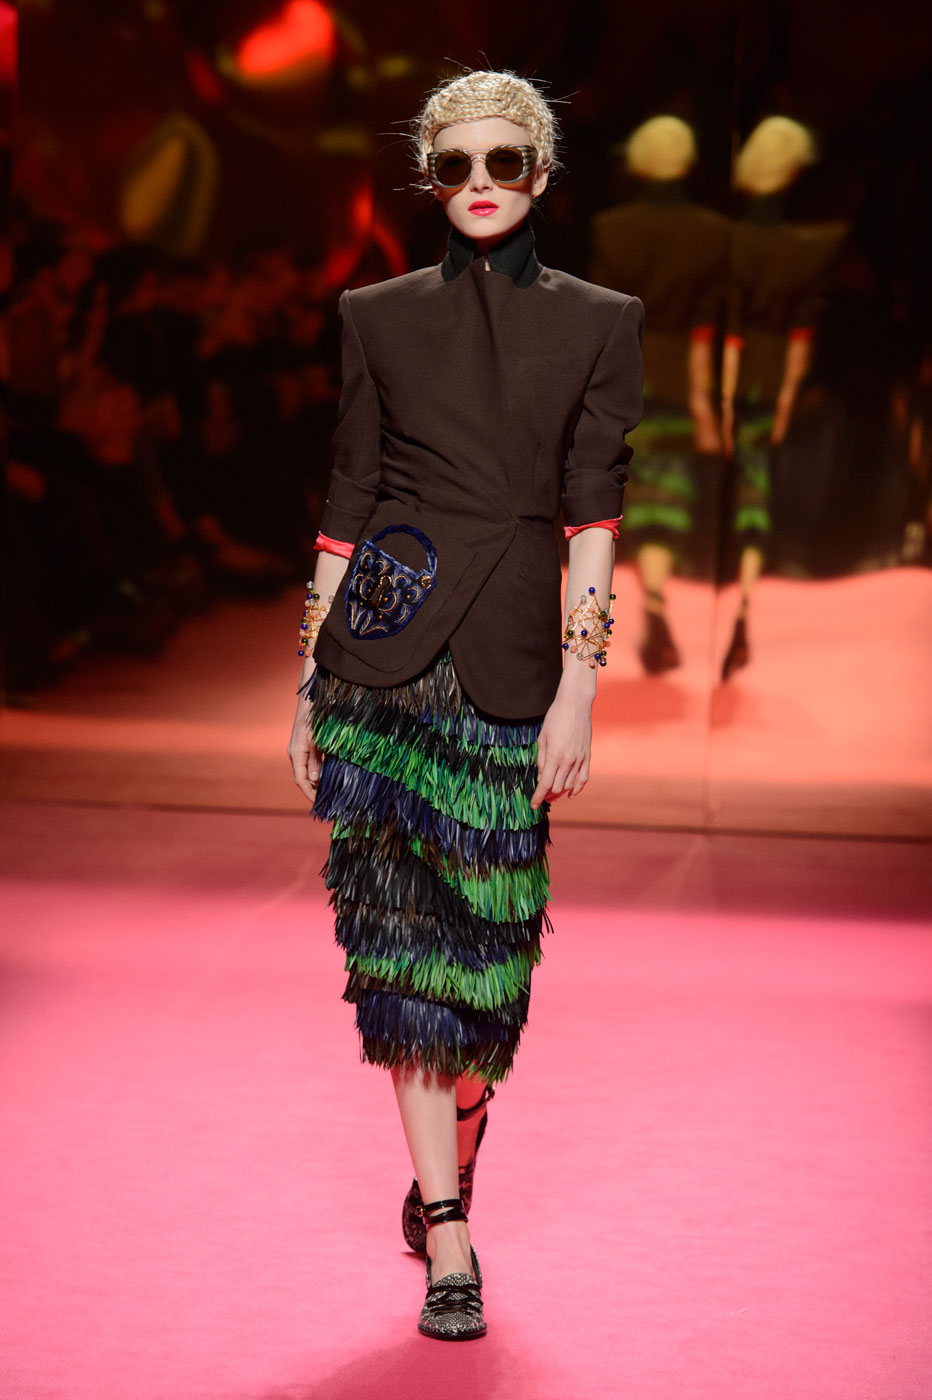 Schiaparelli-fashion-runway-show-haute-couture-paris-spring-summer-2015-the-impression-28